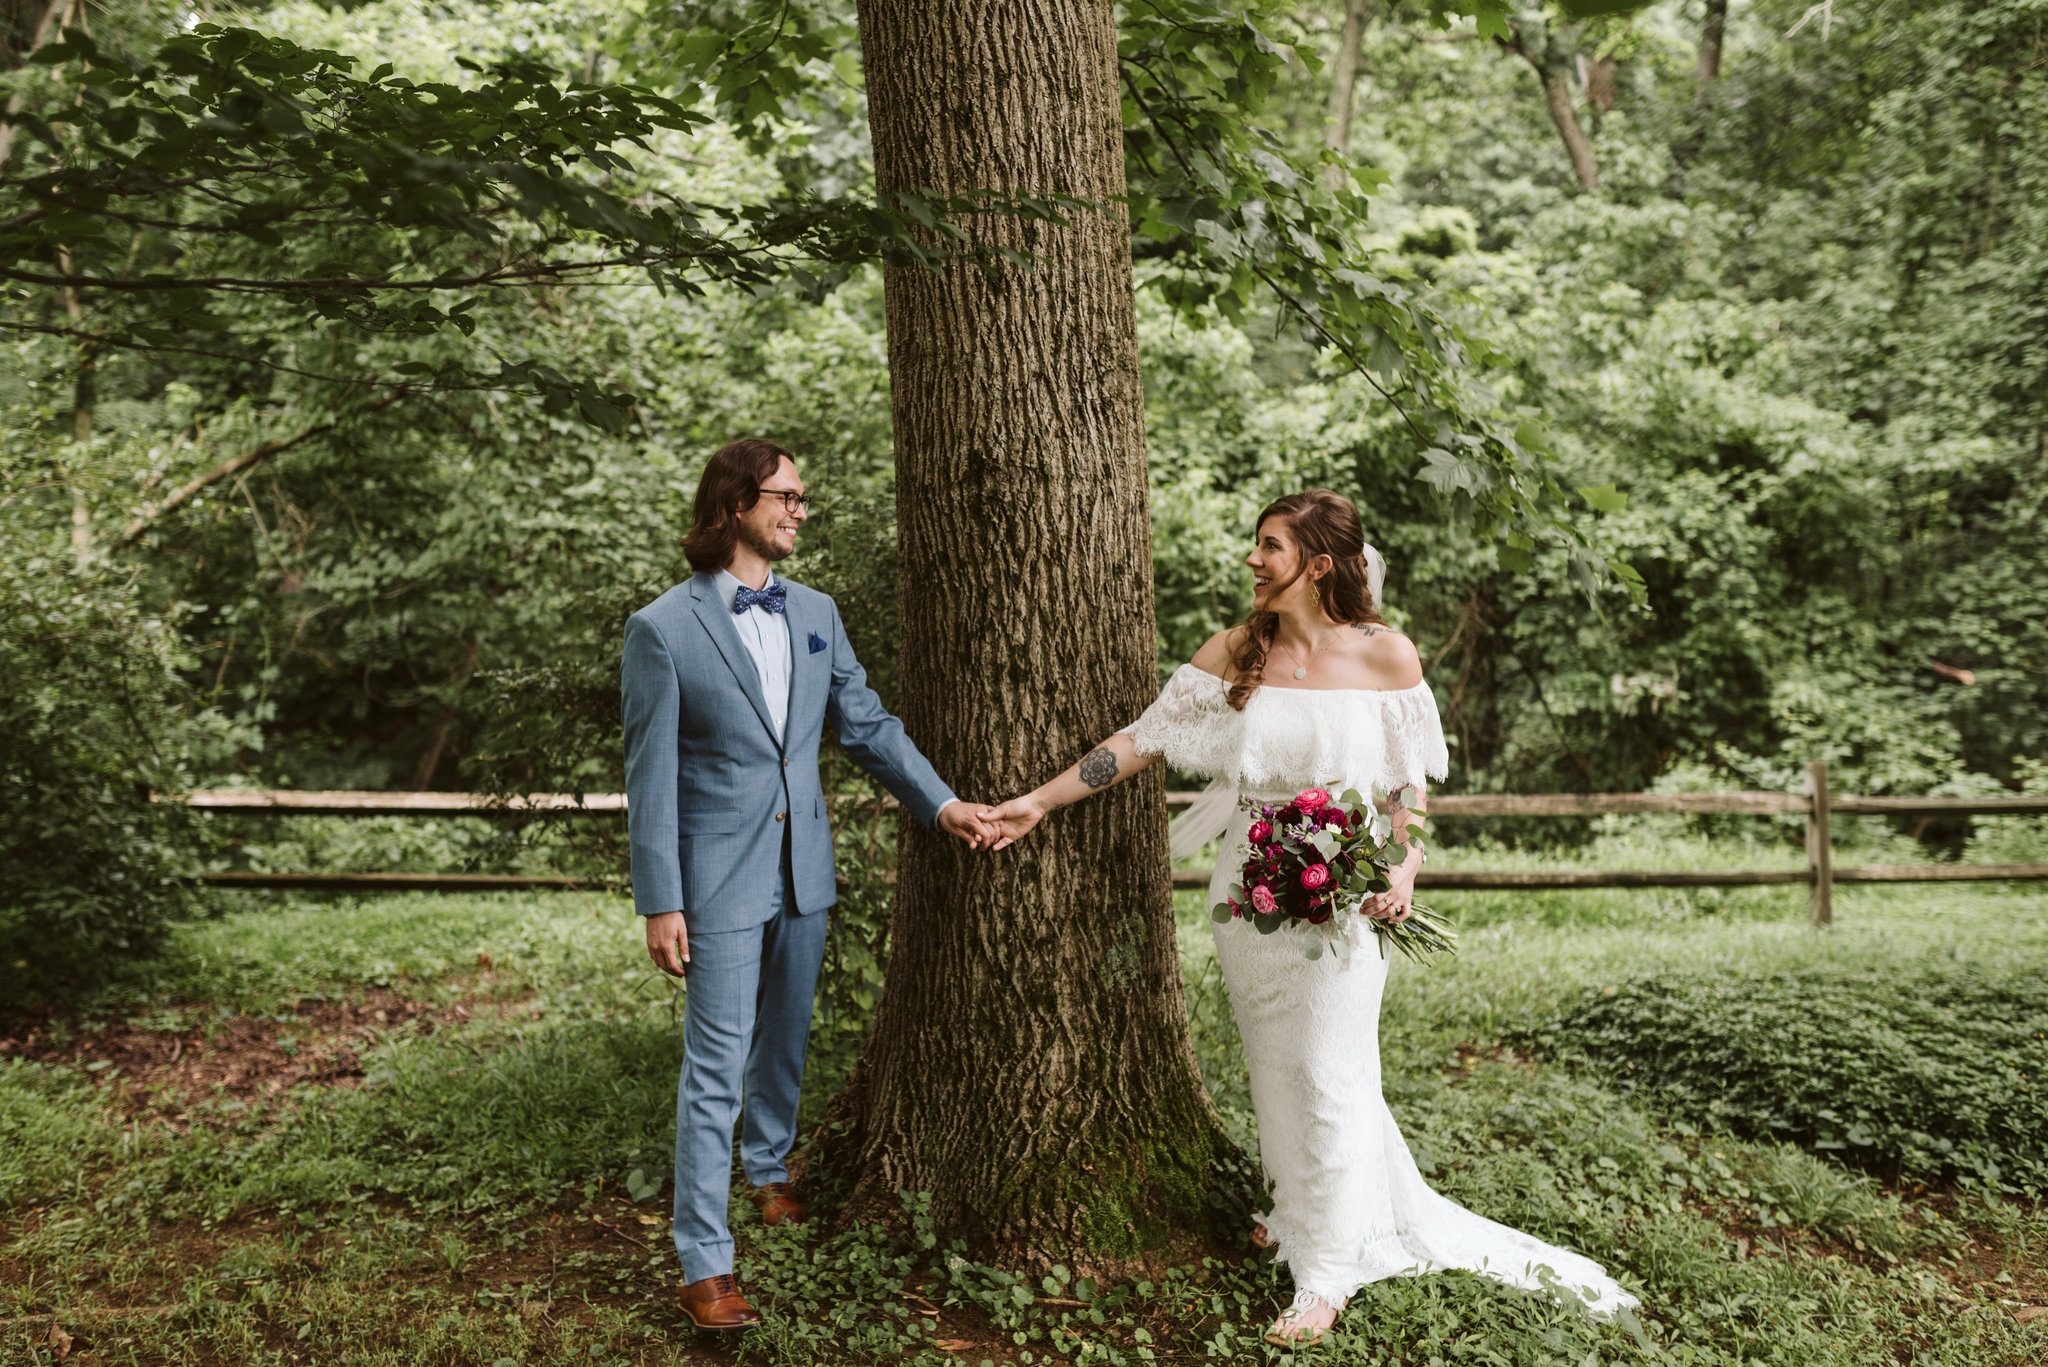 Annapolis, Quaker Wedding, Maryland Wedding Photographer, Intimate, Small Wedding, Vintage, DIY, Bride and groom Holding Hands by Tree